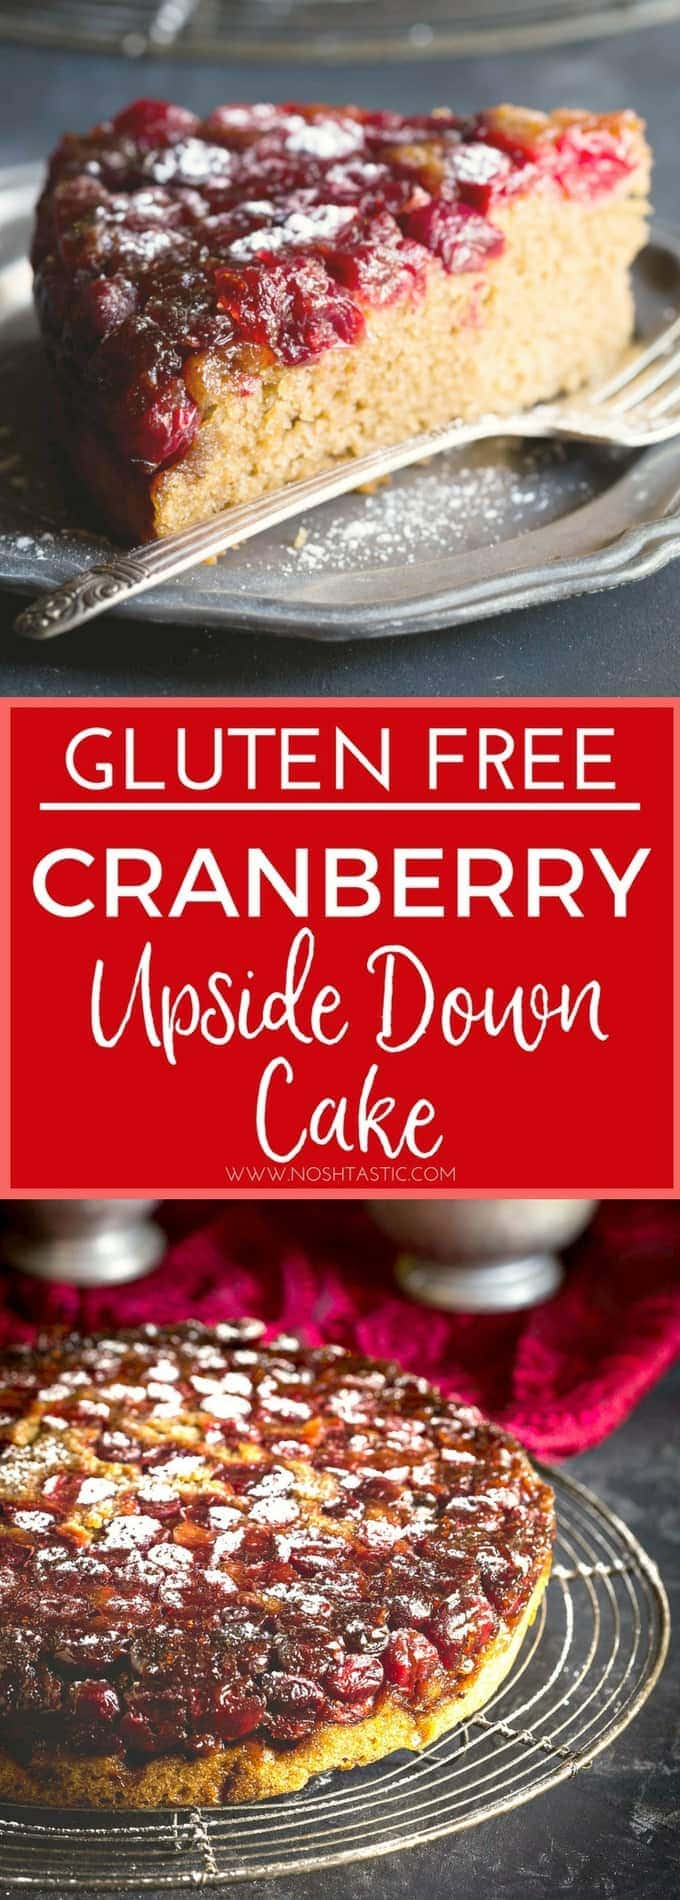 A delightfully festive Gluten Free Cranberry Upside Down Cake that is perfect for the holiday season!